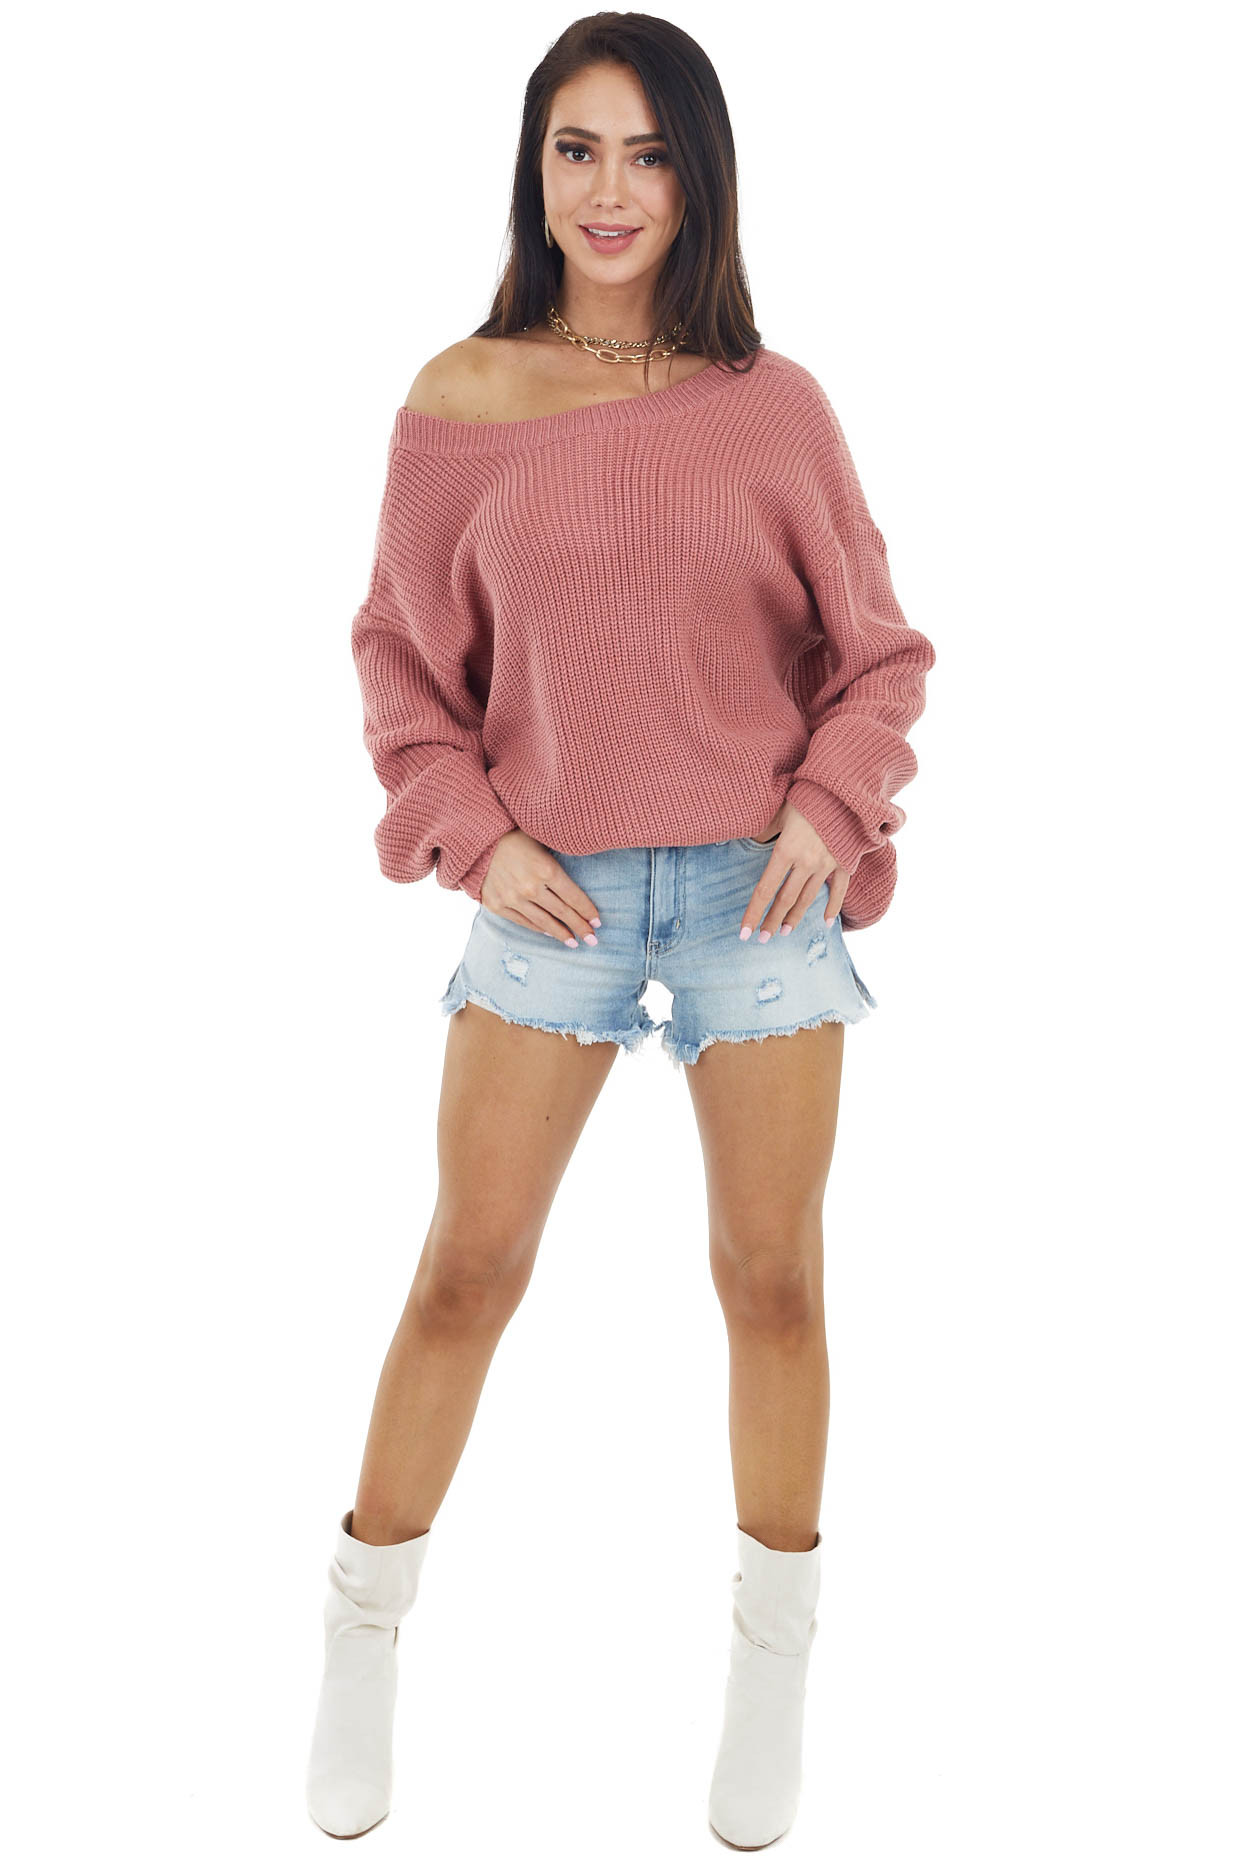 Coral Boat Neckline Knit Sweater with Back Cutout Detail